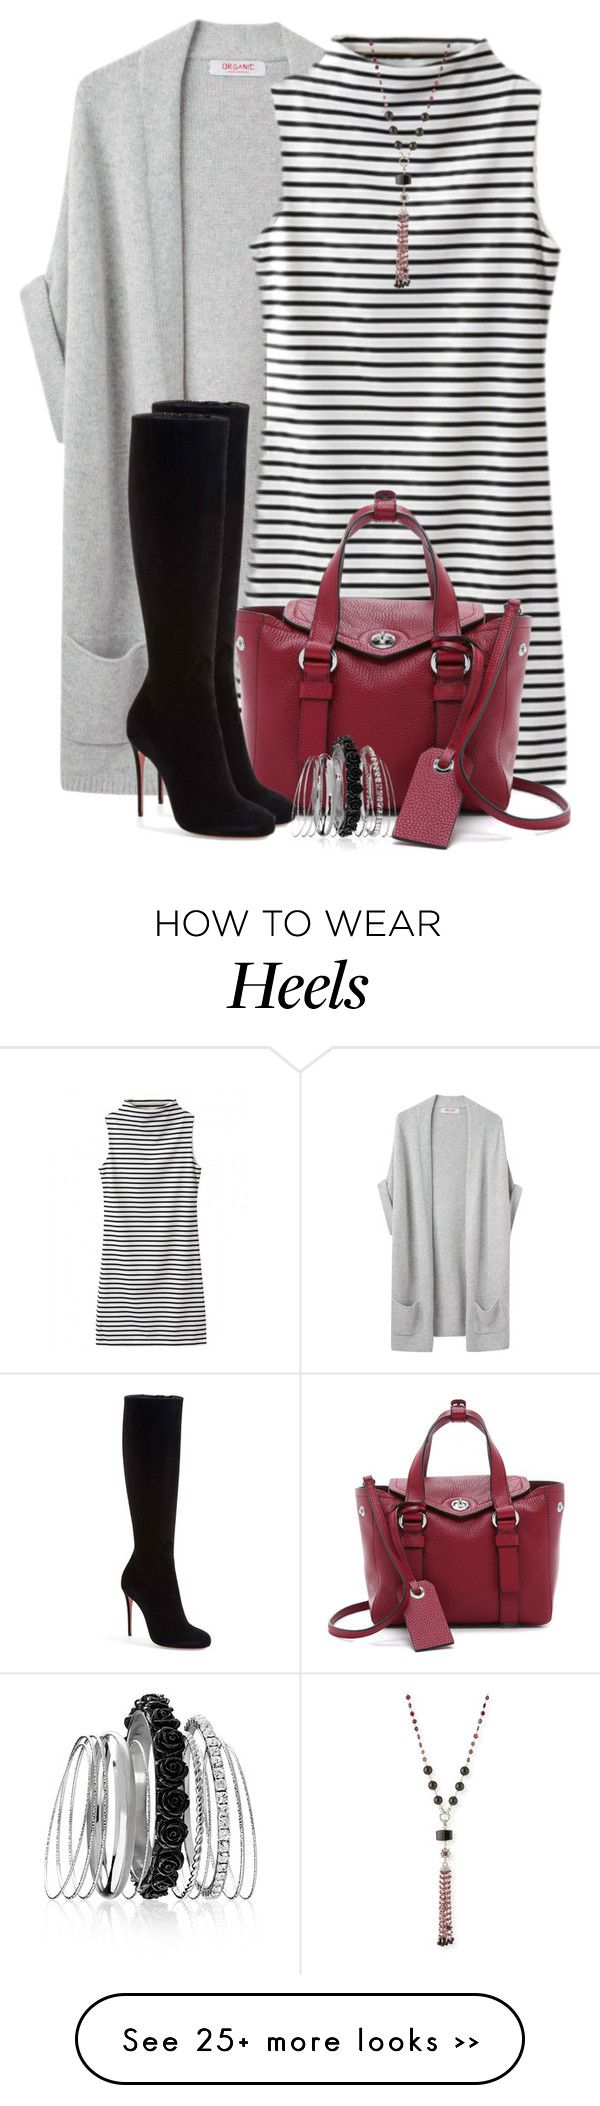 """""""Striped Dress & Boots"""" by brendariley-1 on Polyvore featuring Organic by John Patrick, Marc by Marc Jacobs, Christian Louboutin, Stephen Dweck and Avenue"""